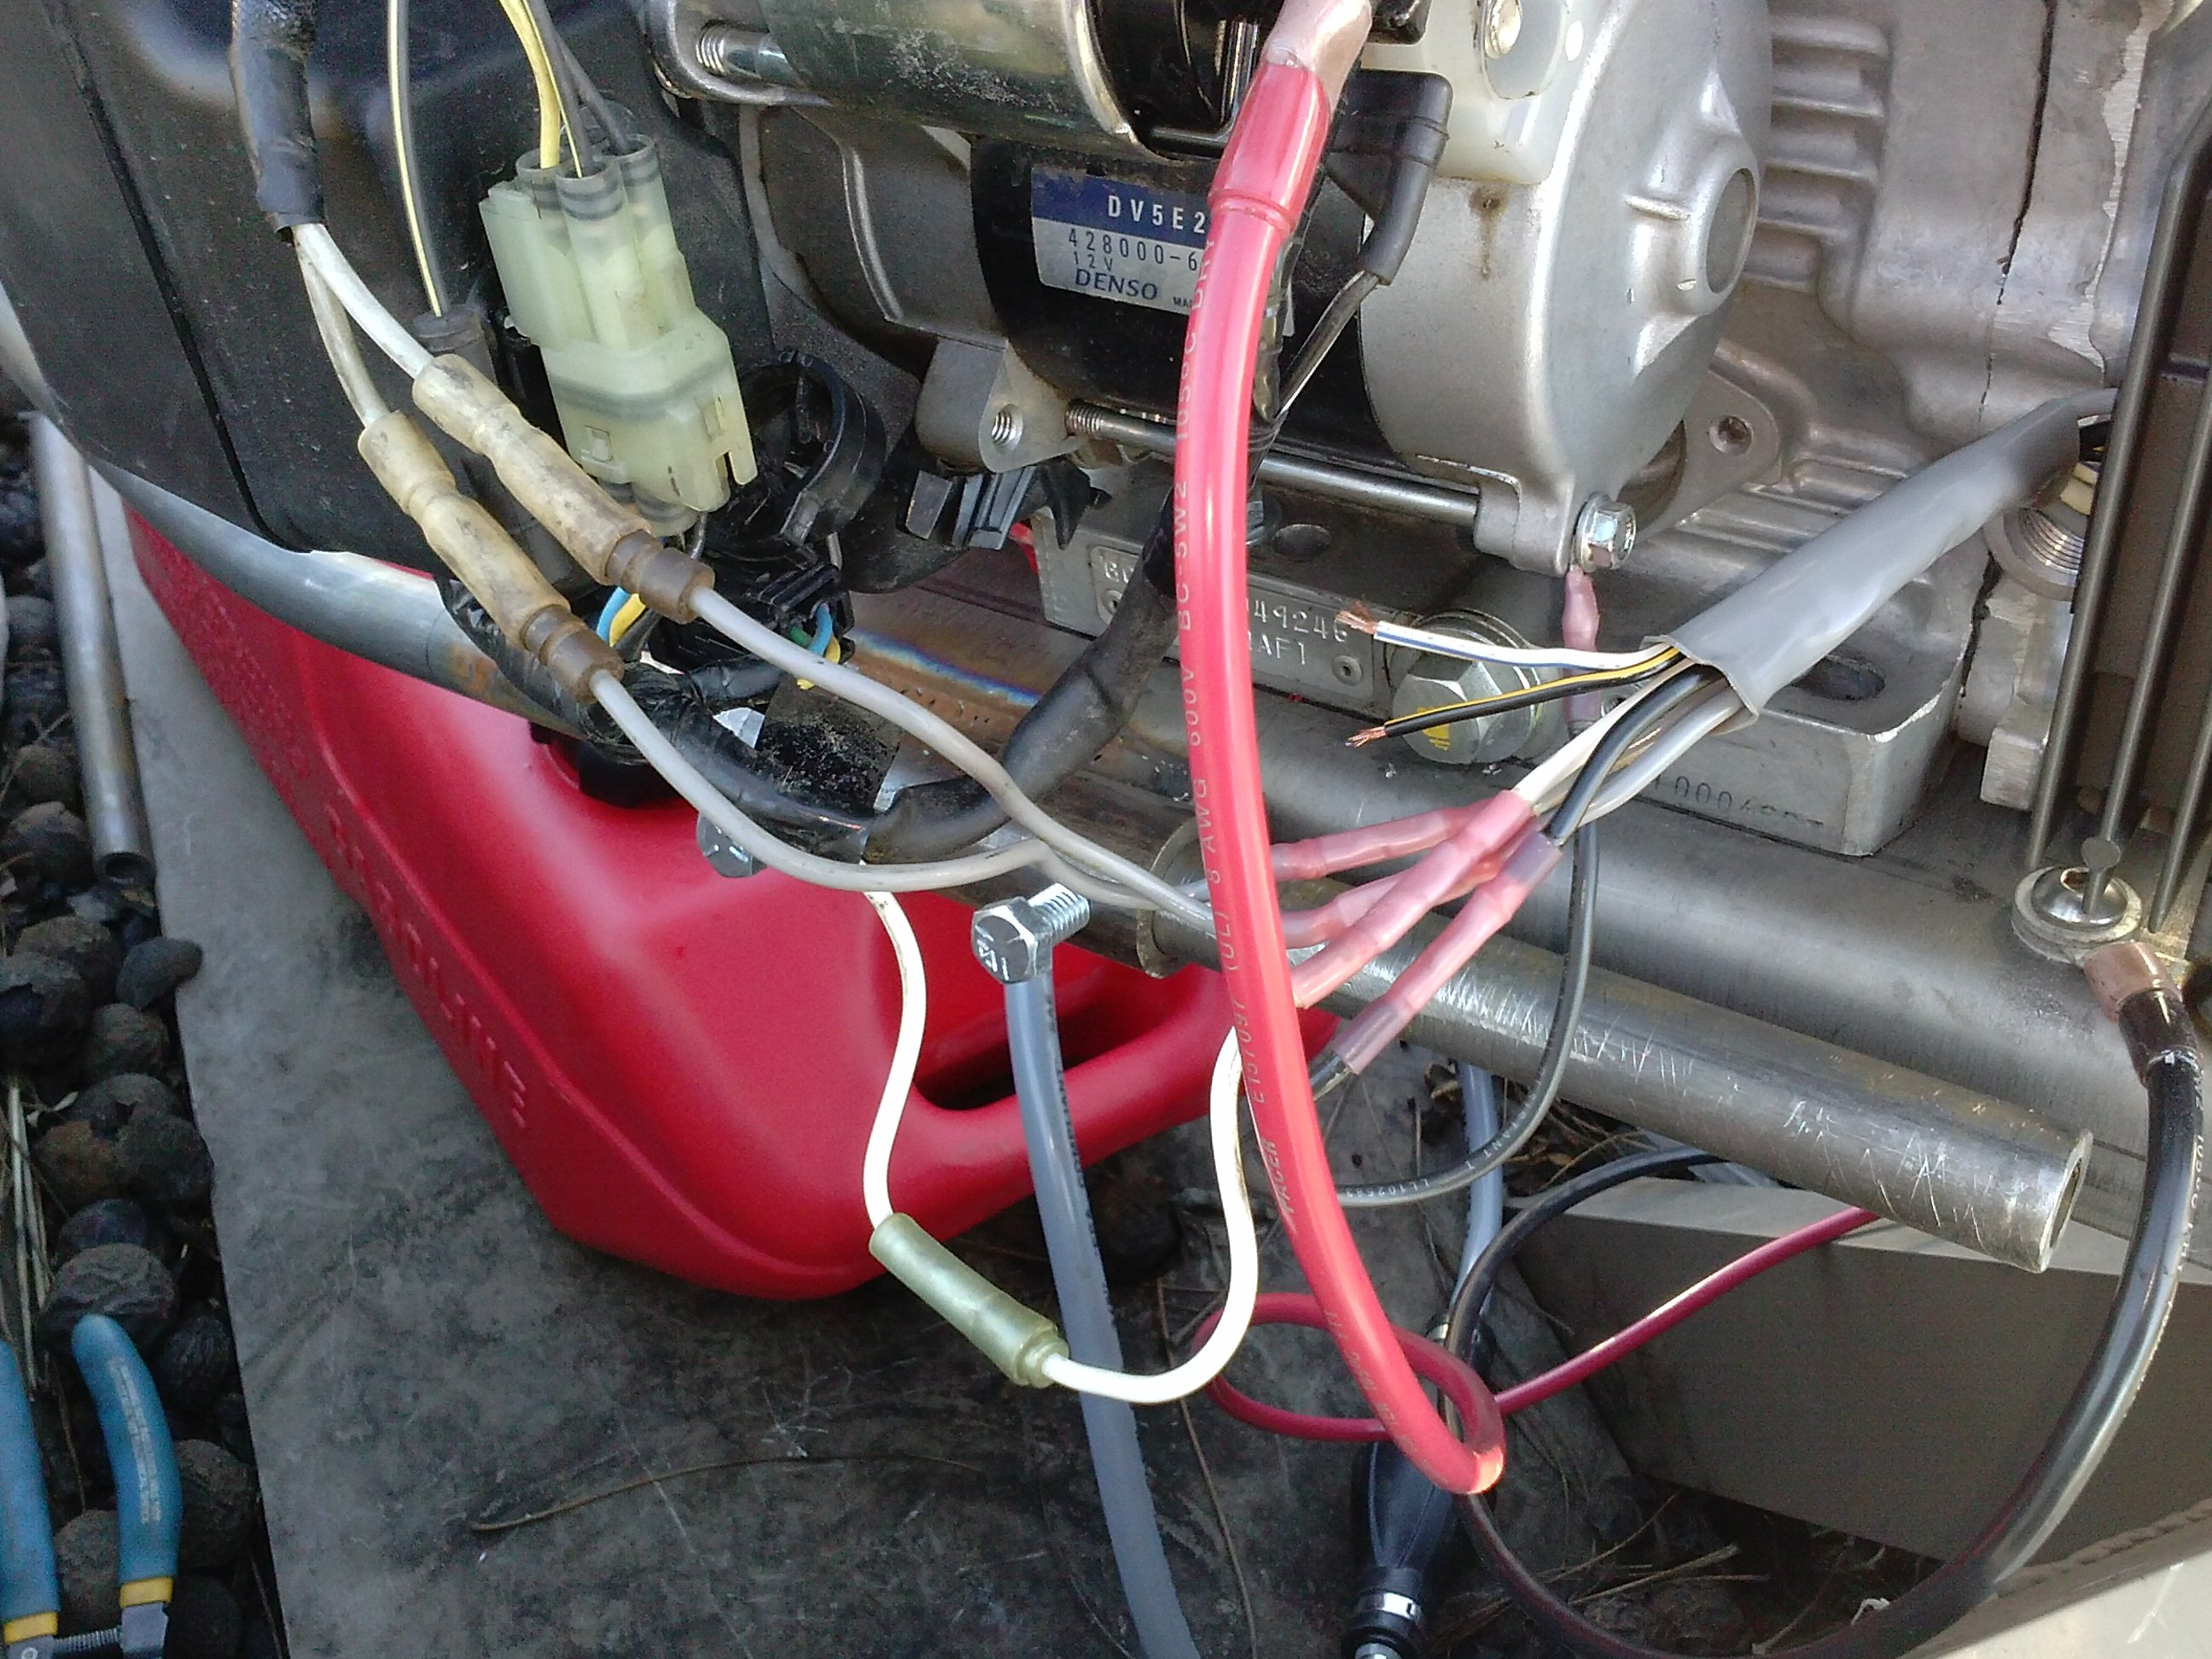 I need help troubleshooting the charging system on a honda ...